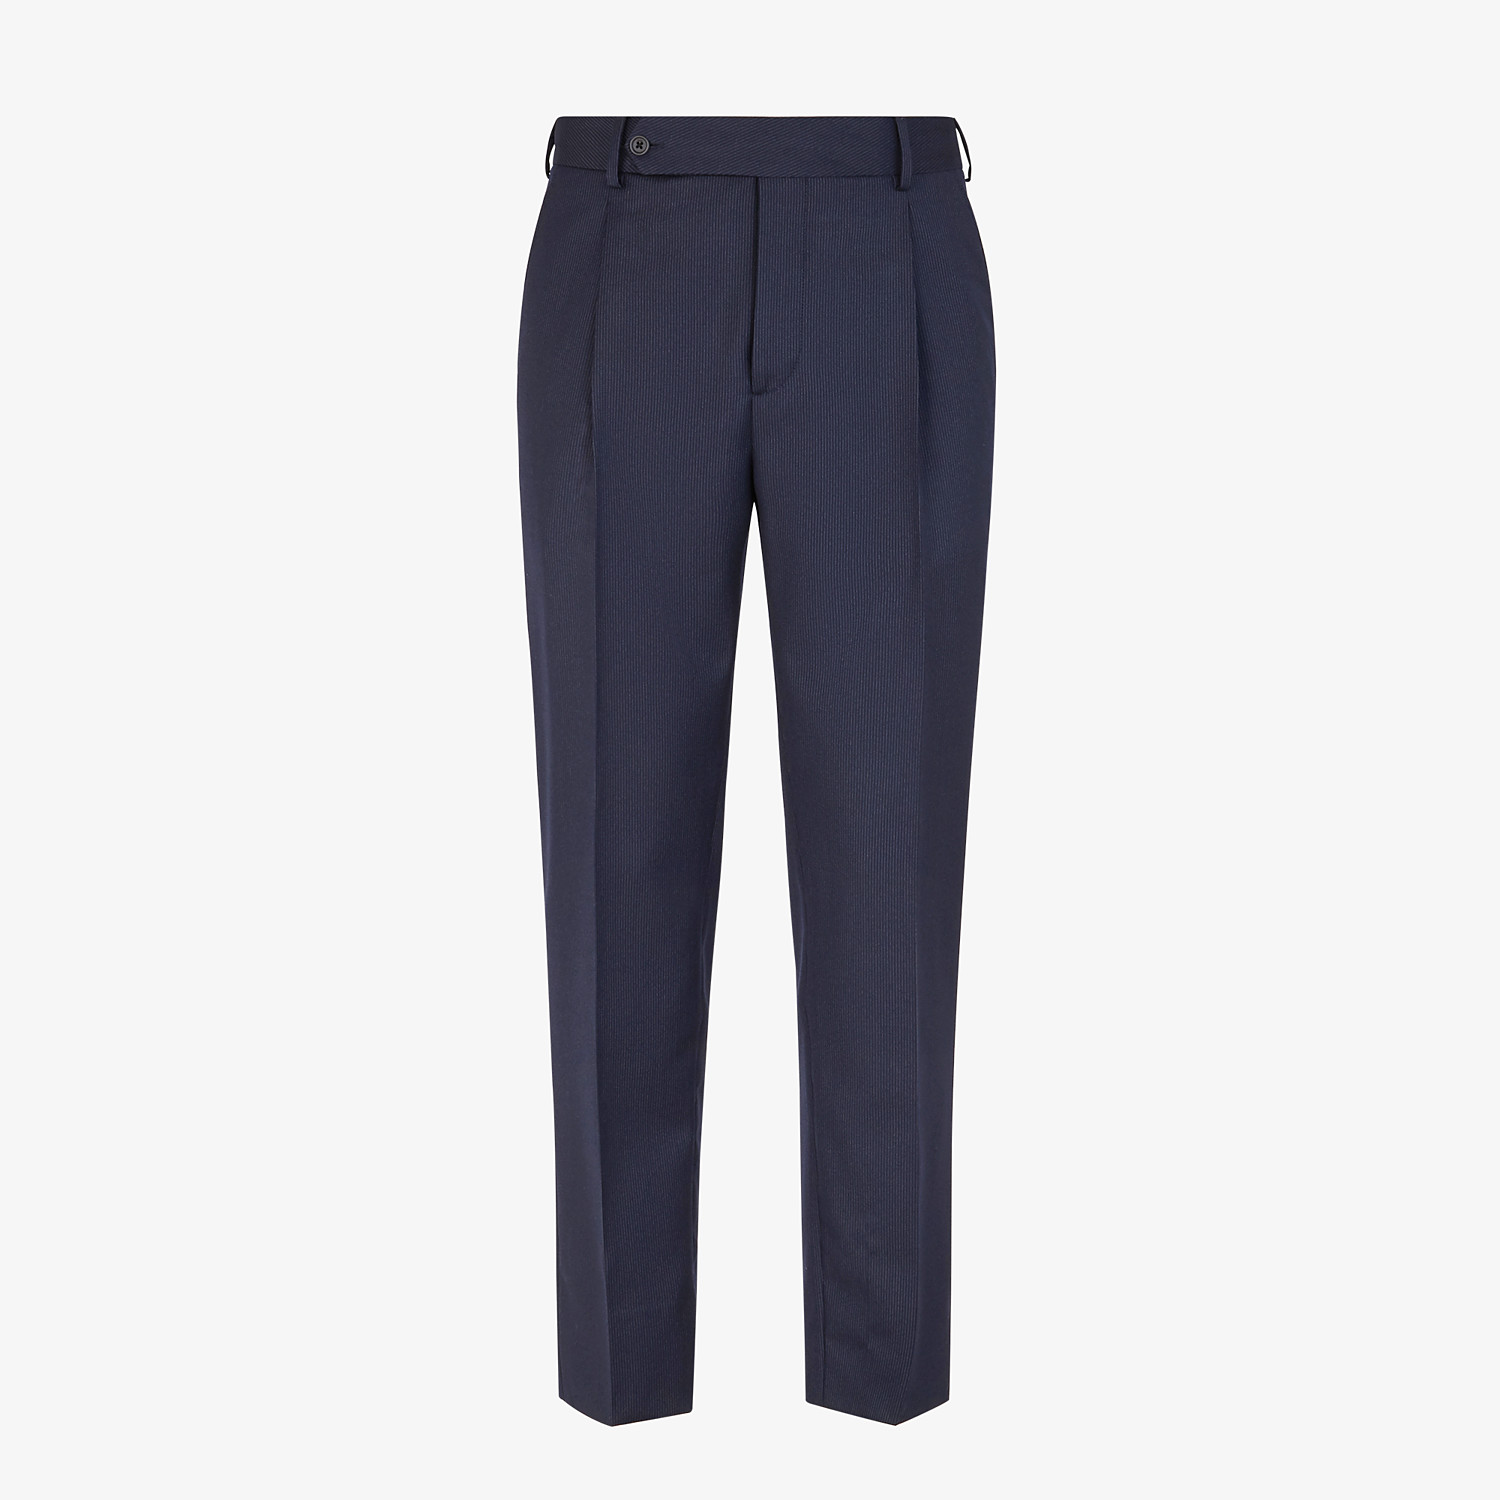 FENDI TROUSERS - Multicolour wool and silk trousers - view 1 detail